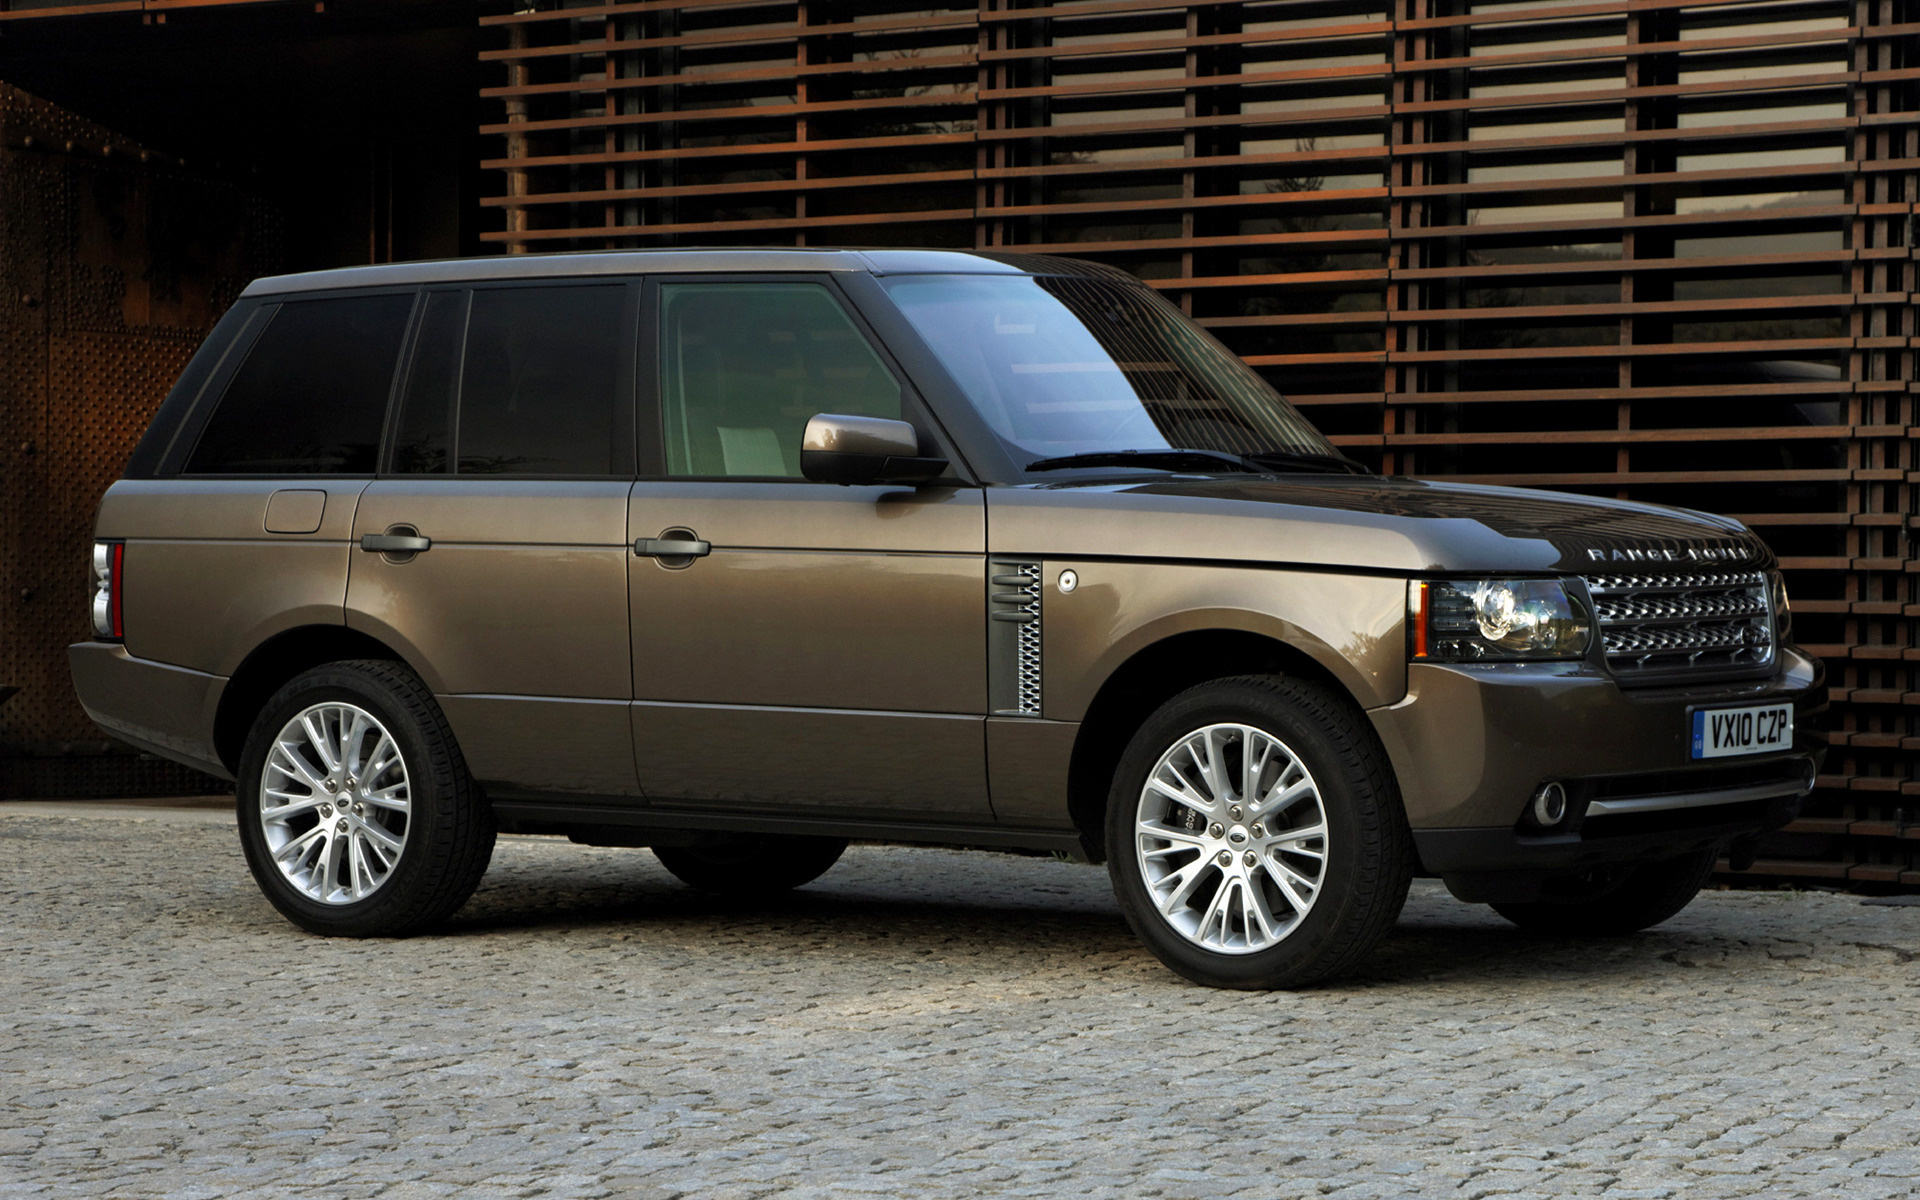 Land Rover Autobiography >> 2009 Range Rover Autobiography - Wallpapers and HD Images | Car Pixel